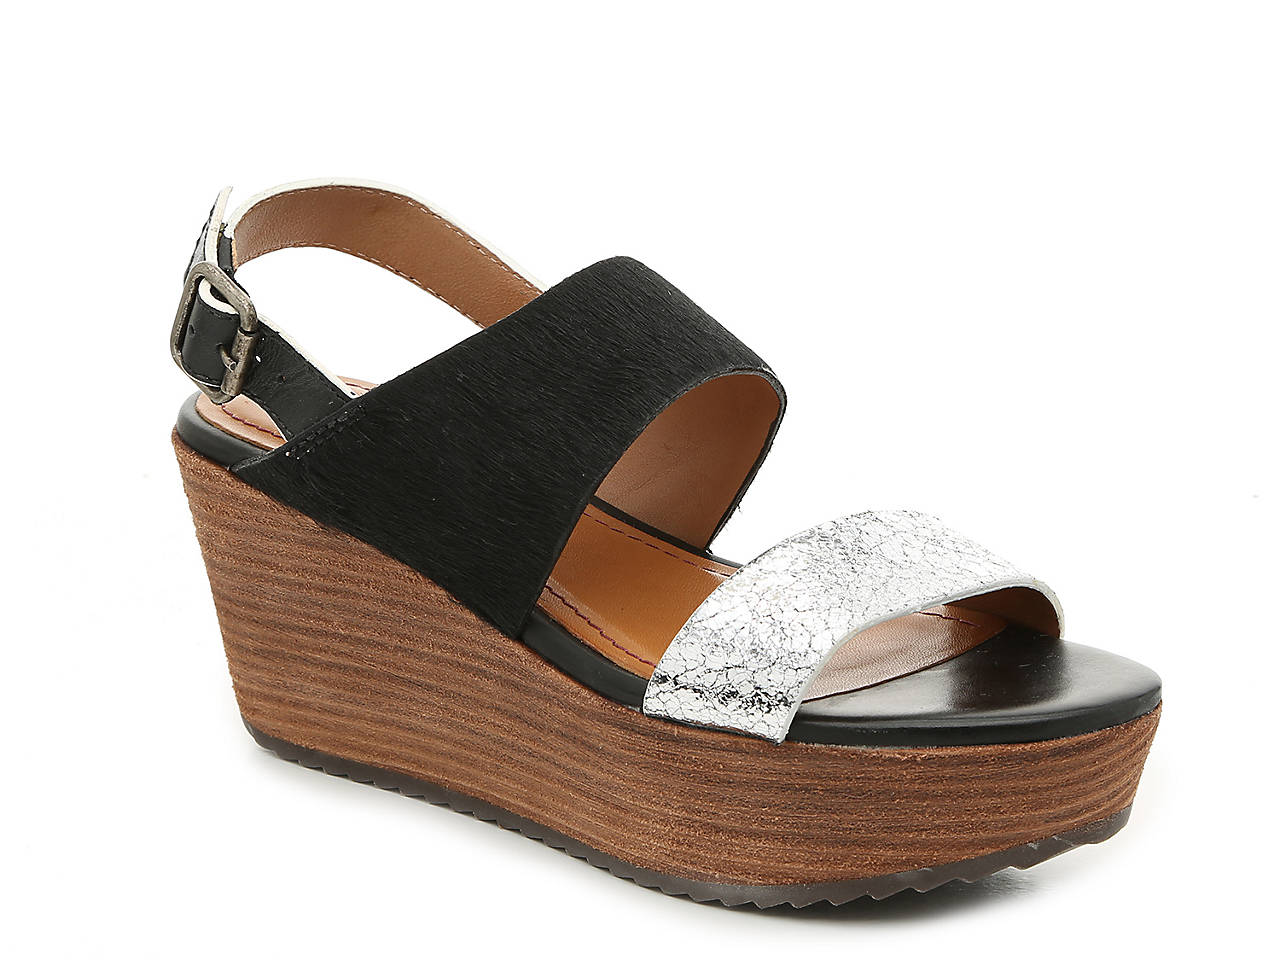 e634a75a54f Trask Robyn Wedge Sandal Women s Shoes